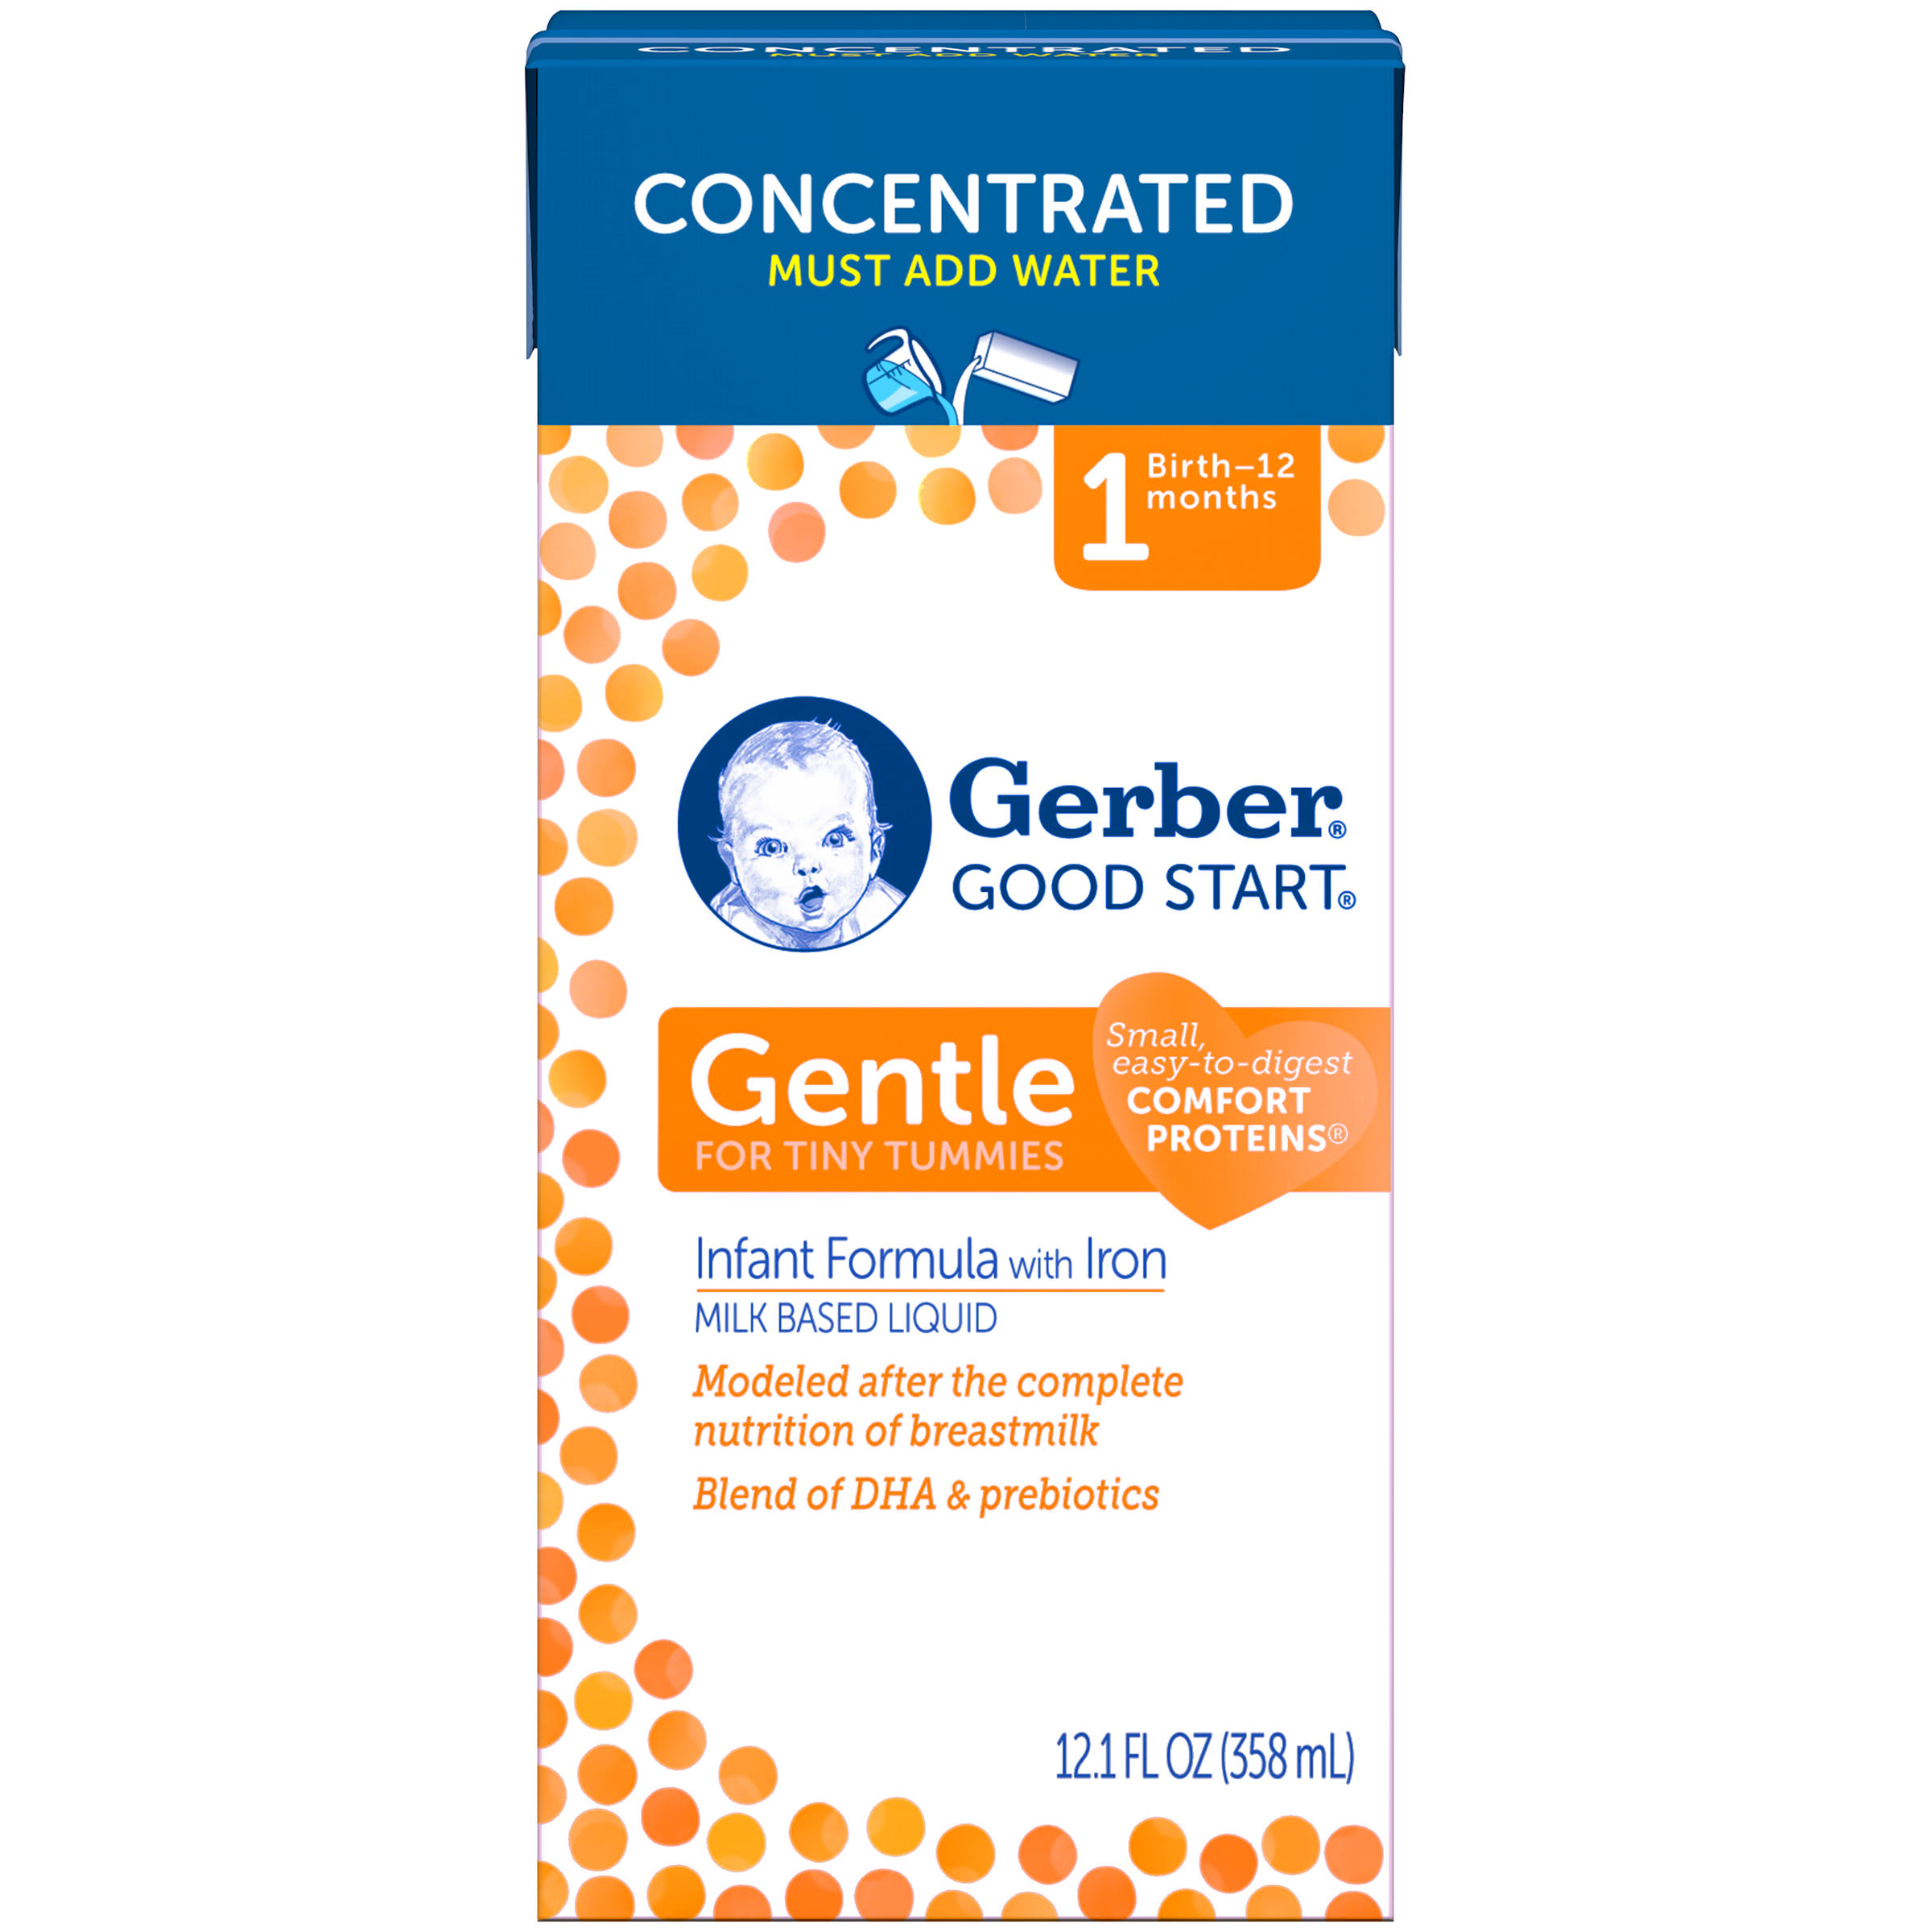 Gerber Good Start Gentle Non-GMO Concentrated Liquid Infant Formula, Stage 1, 12.1 fl oz (Pack of 12)